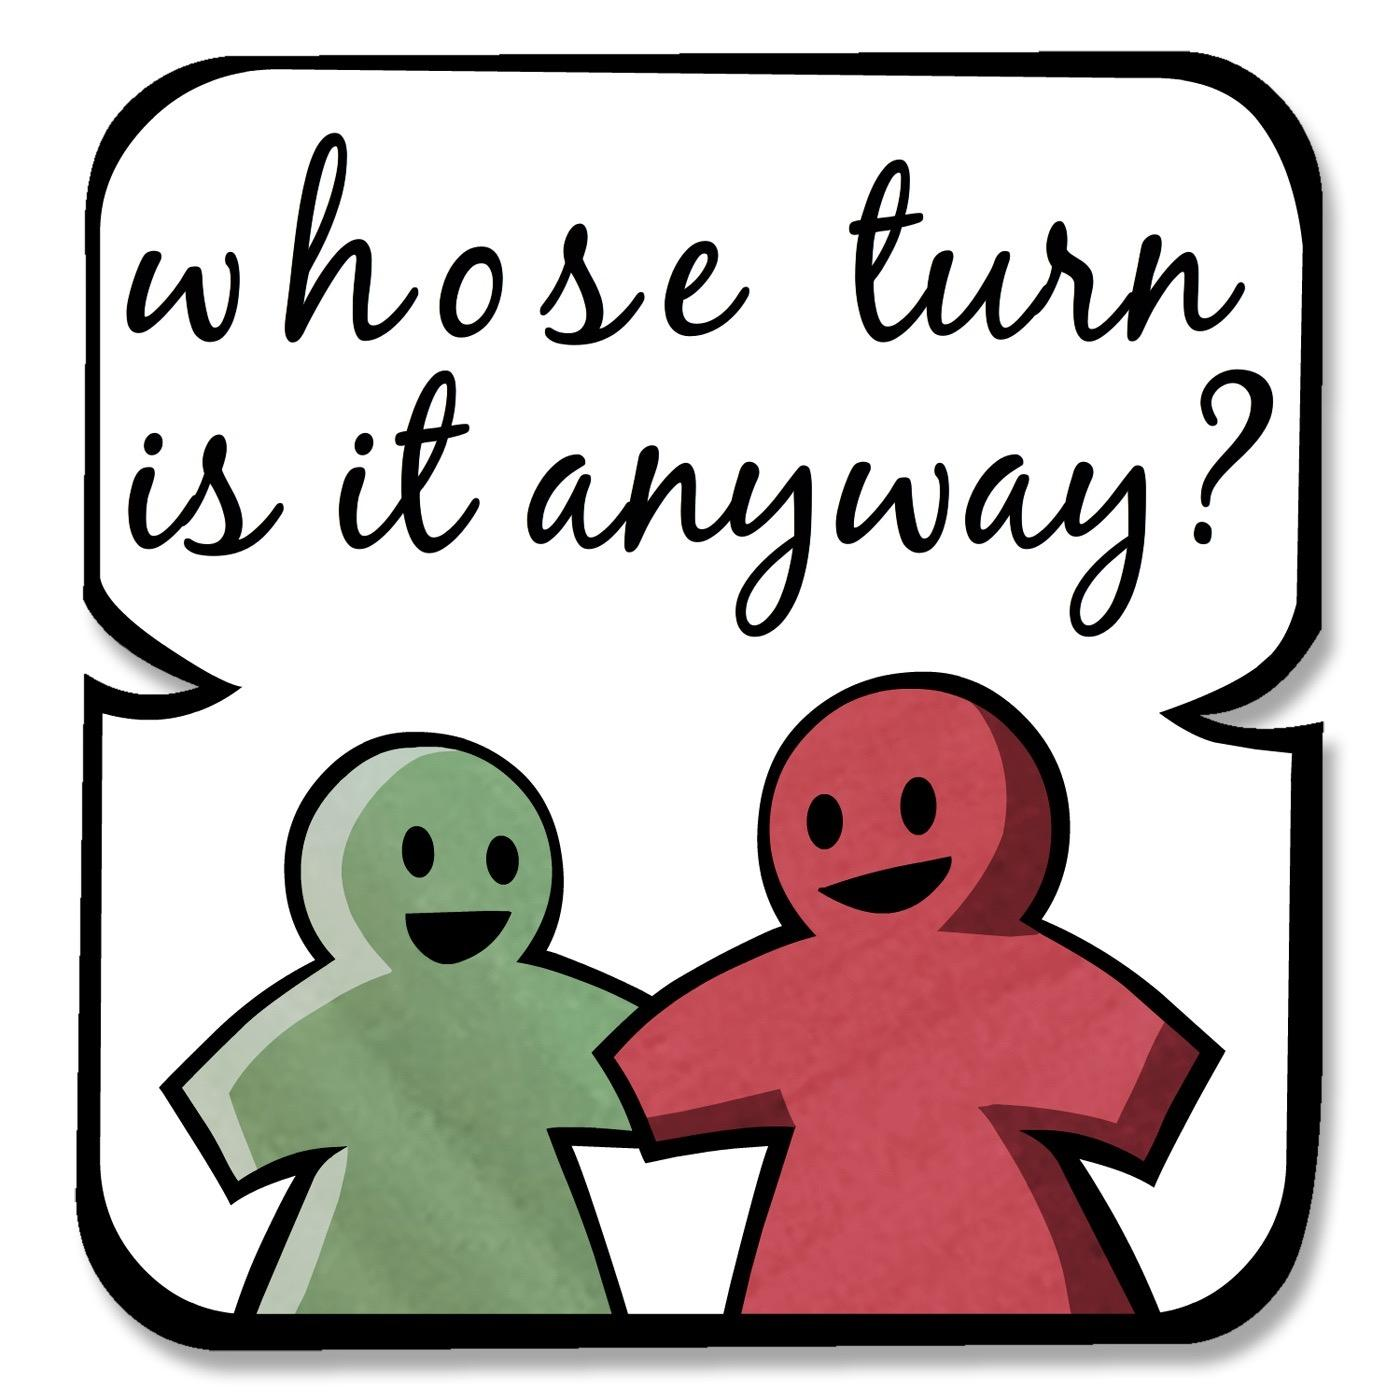 Whose turn podcast whosepodcast twitter